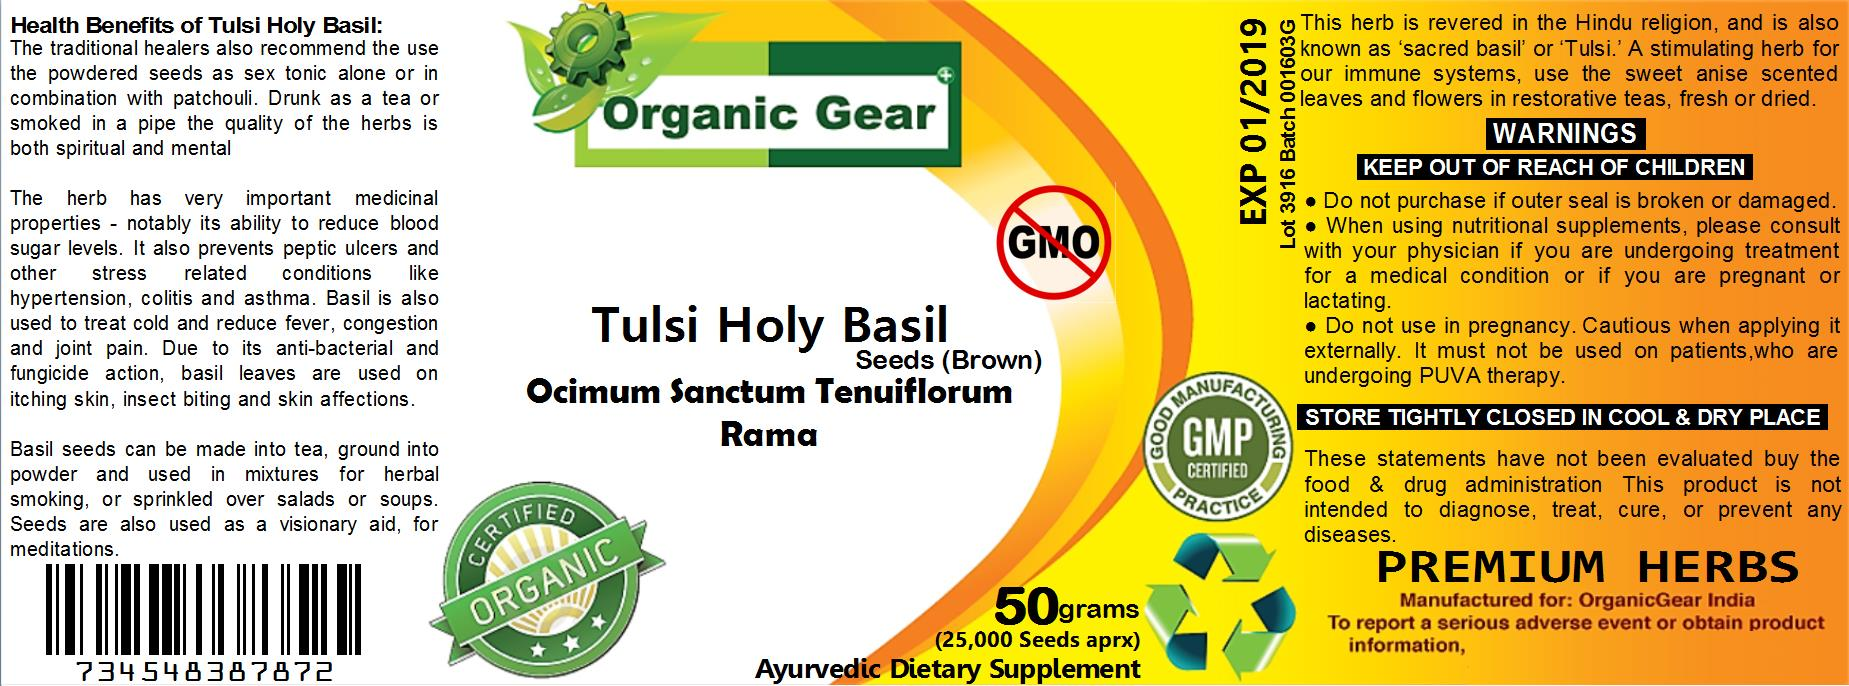 UYO38 50g (25000+ Seeds Aprx) Organic Gear Tulsi Brown Holy Basil Ocim